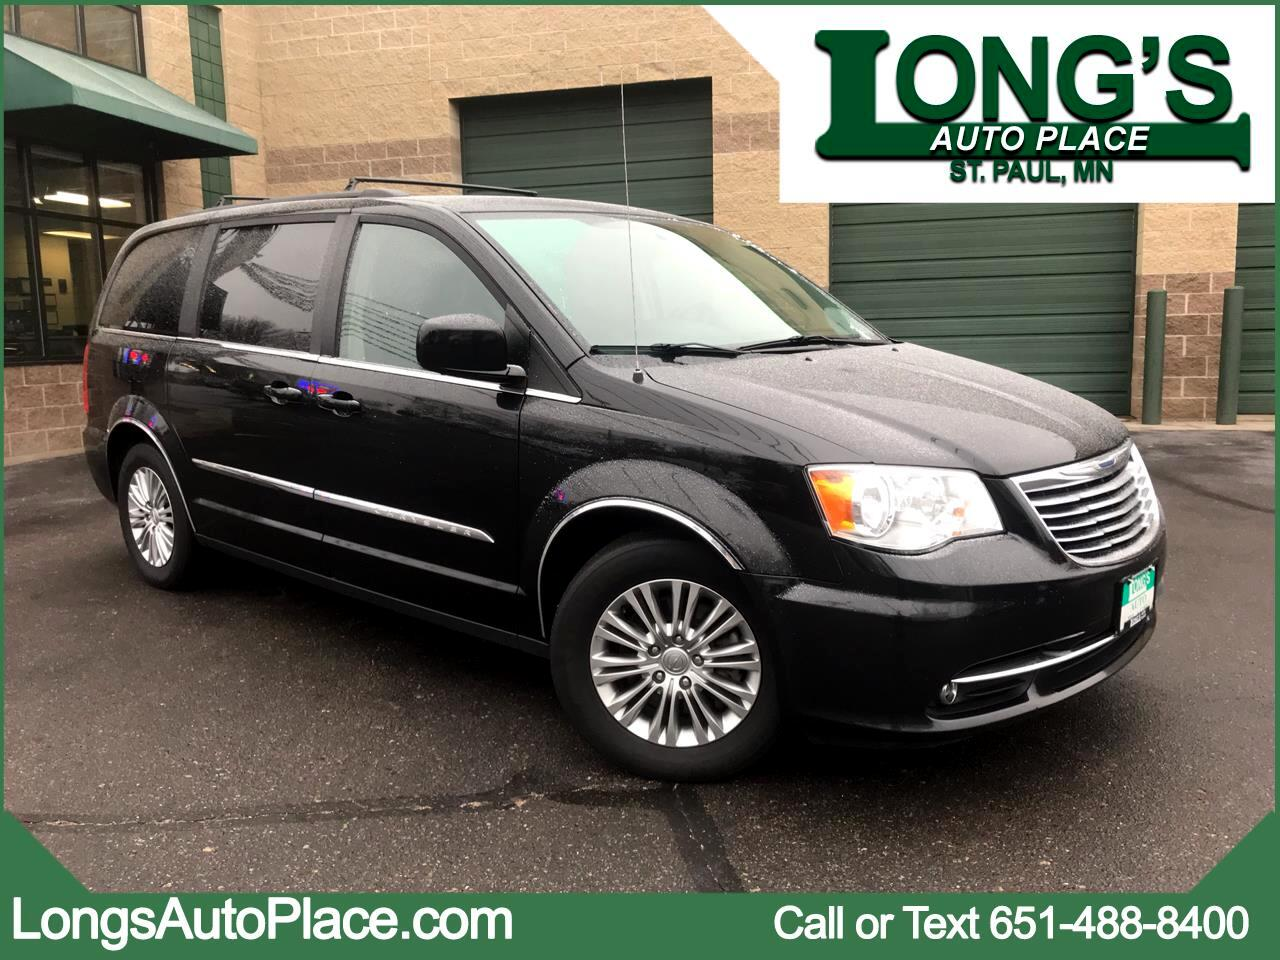 2015 Chrysler Town & Country 4dr Wgn Touring w/Leather